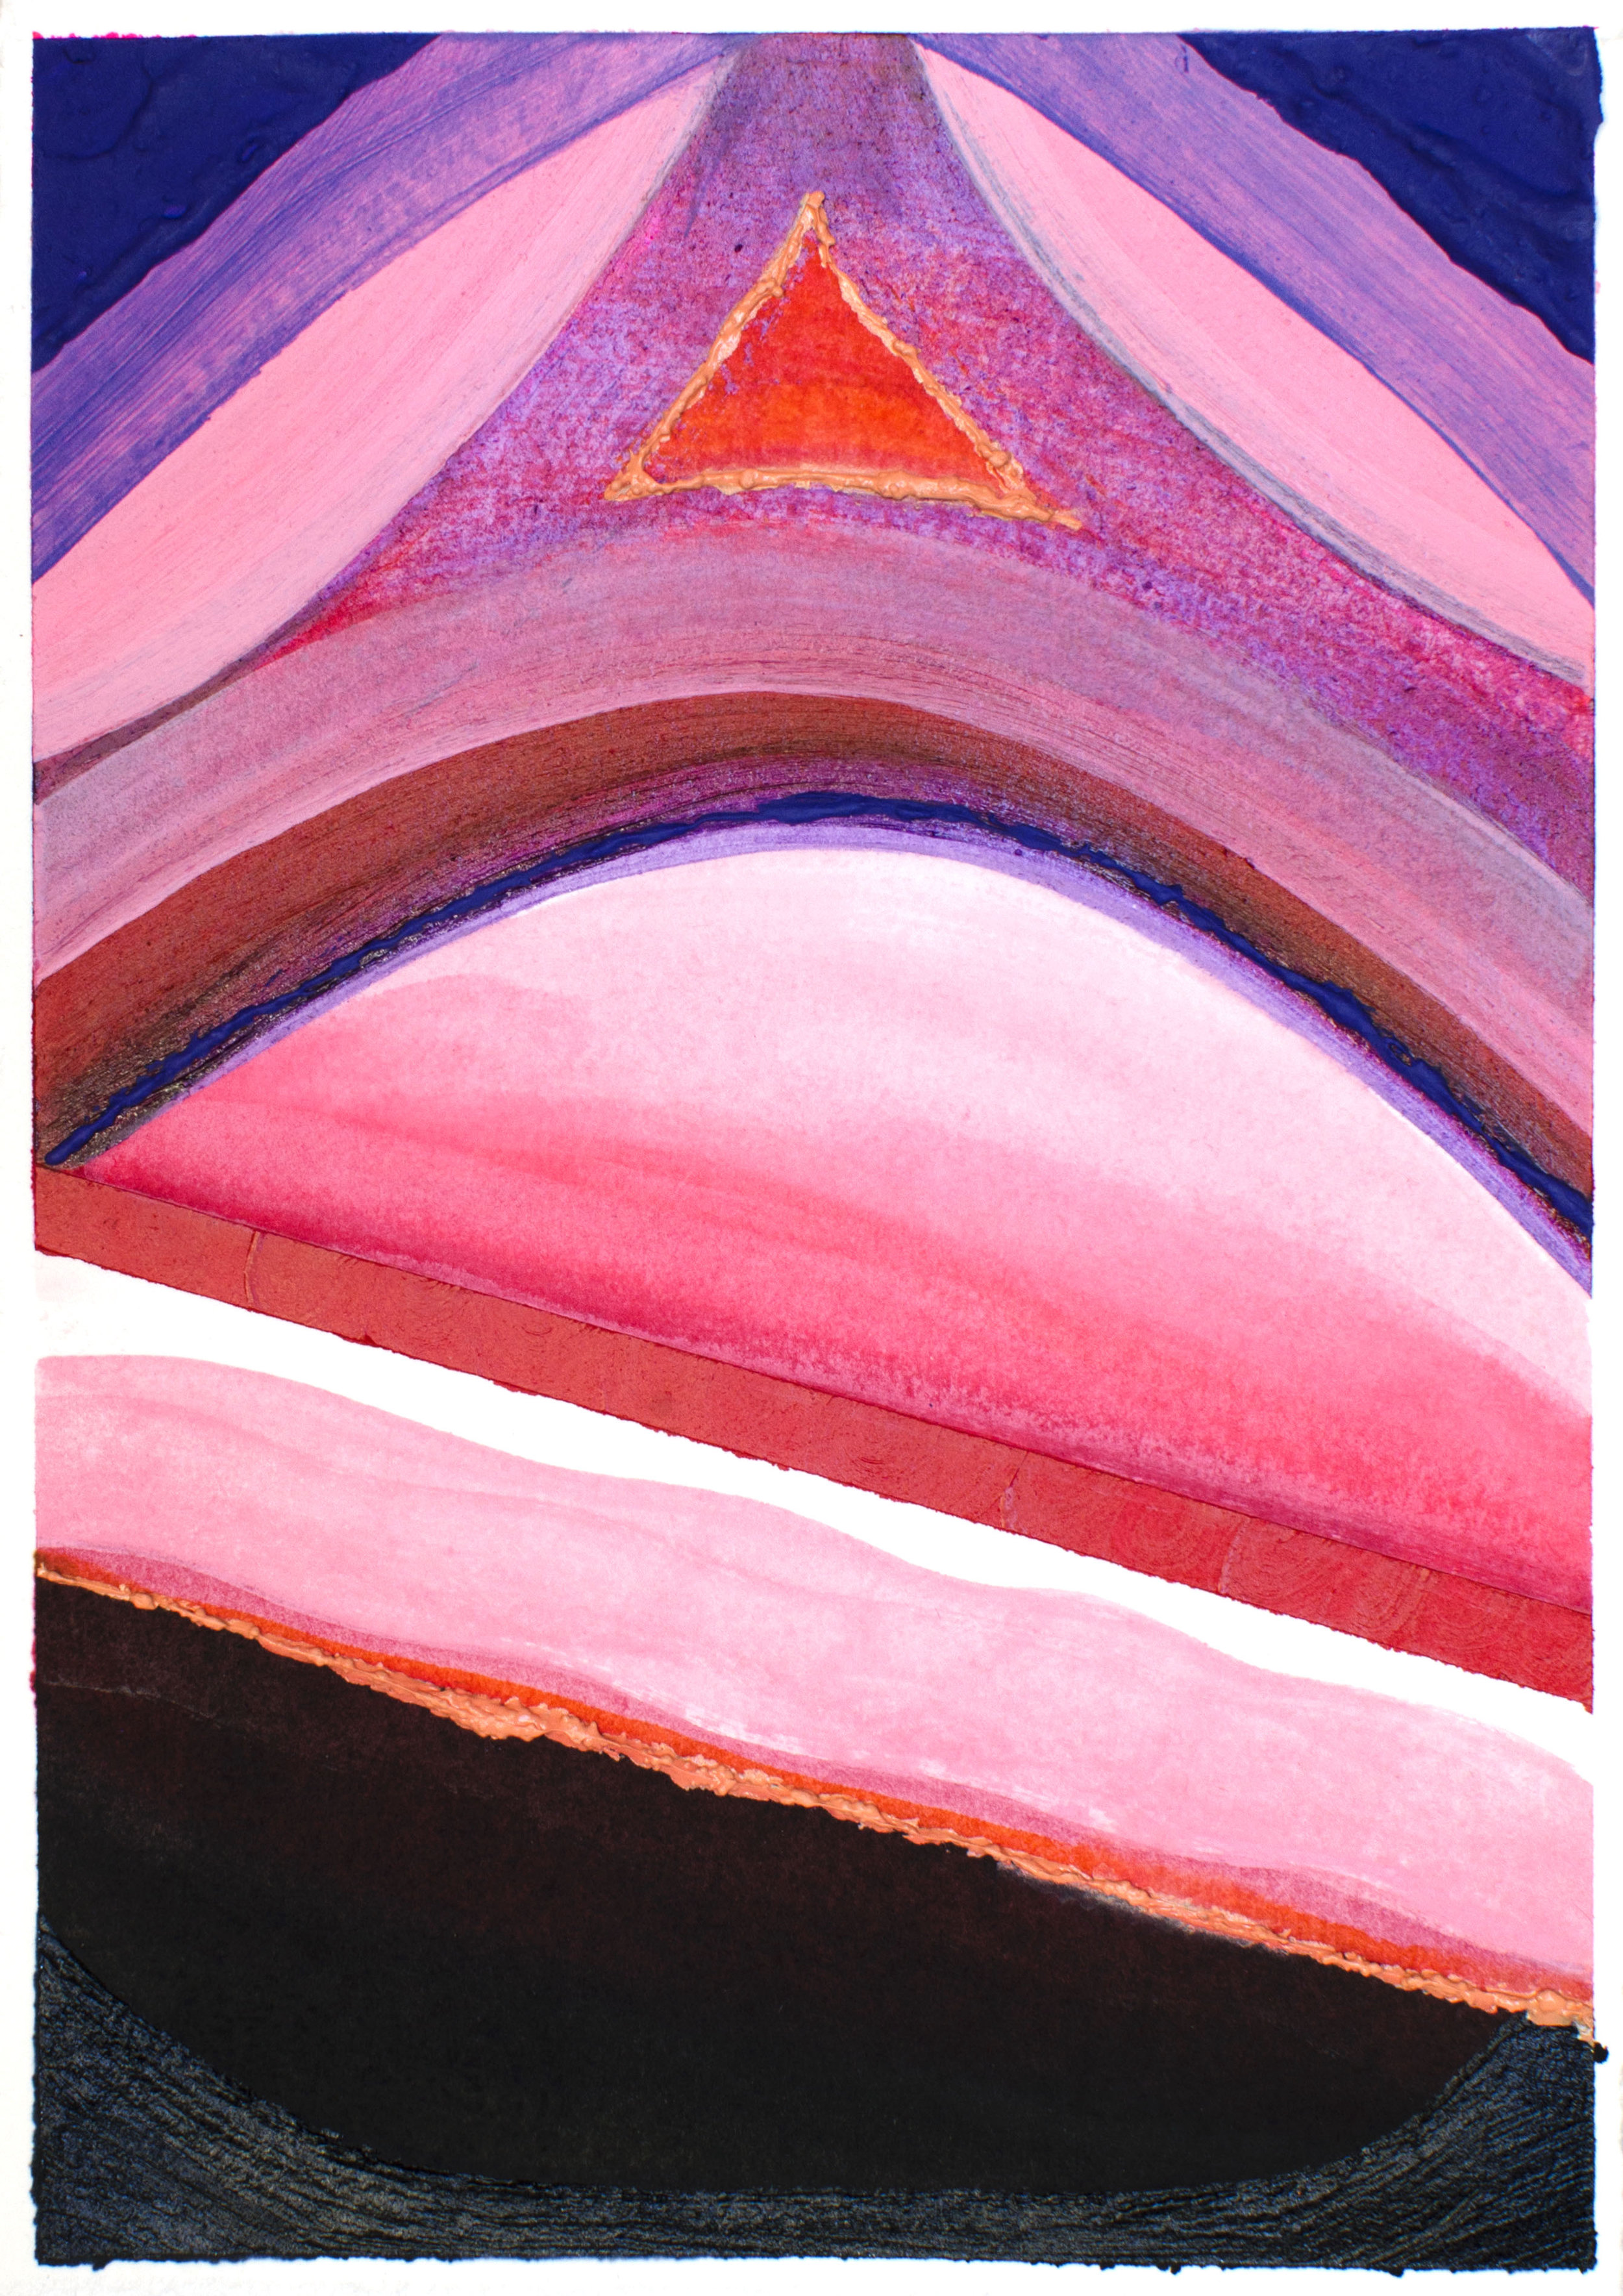 """Slip - Elise Thompson7"""" x 5"""" watercolor, acrylic, and glass beads on paper, framed$175"""